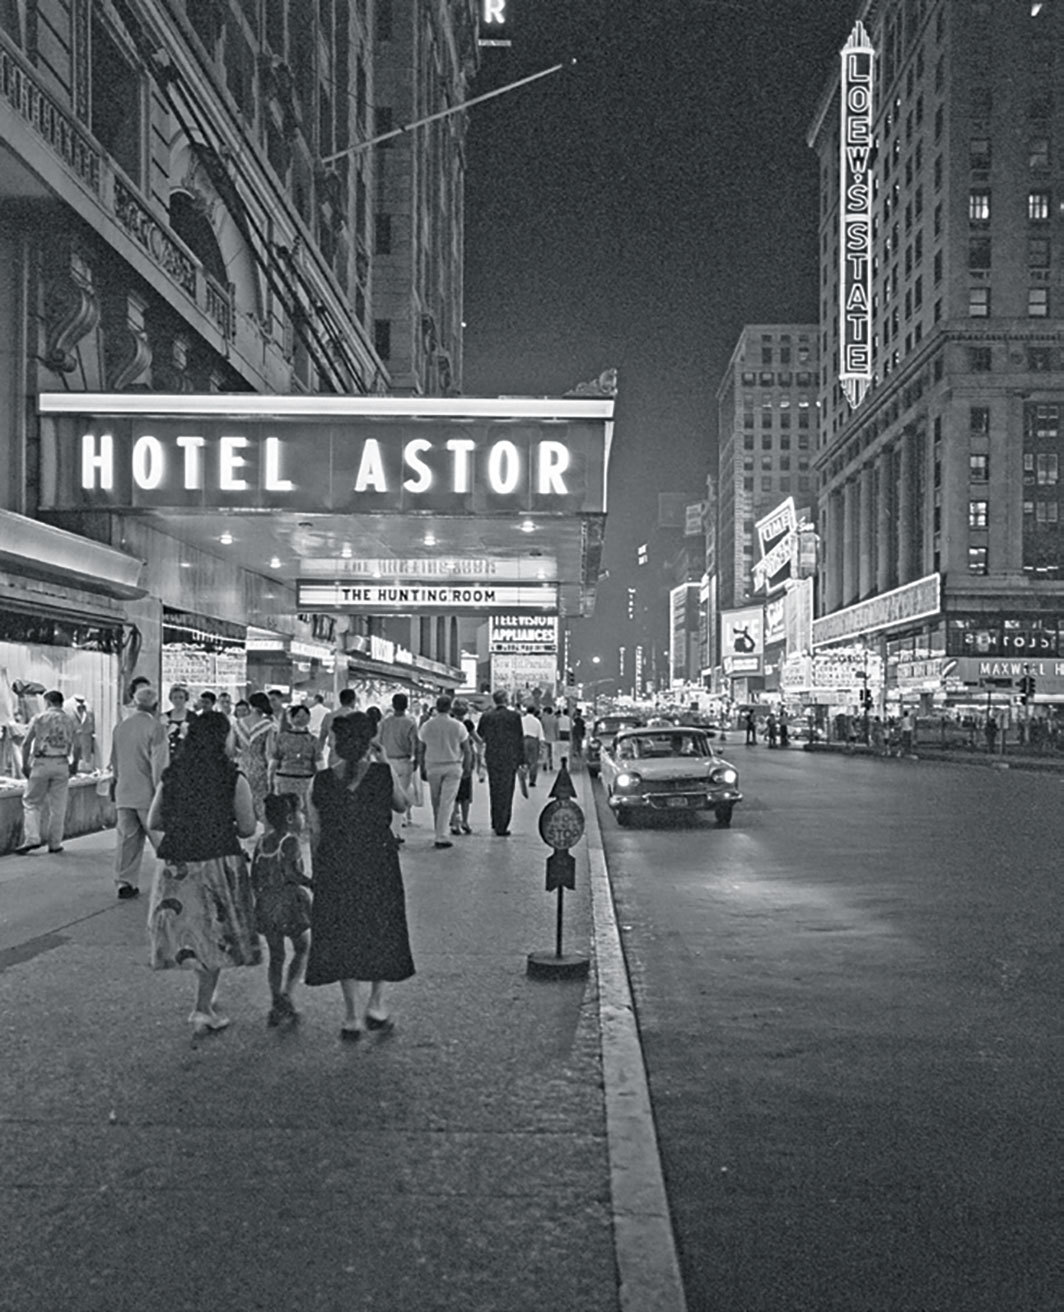 Hotel Astor, Times Square, New York, 1958. Photo: Marty Lederhandler/AP/Shutterstock.